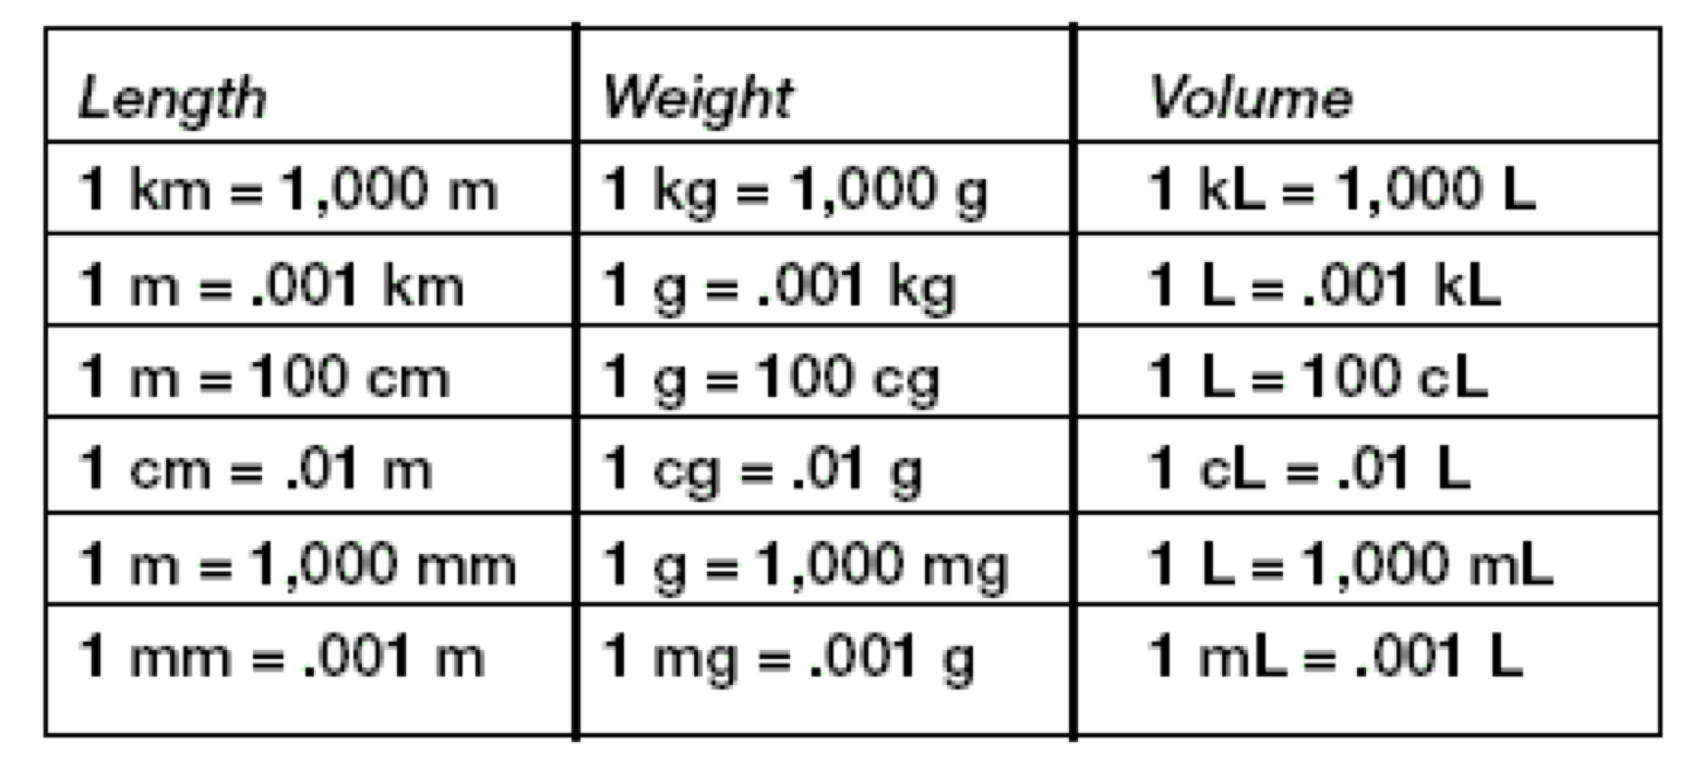 Metric system conversion charts